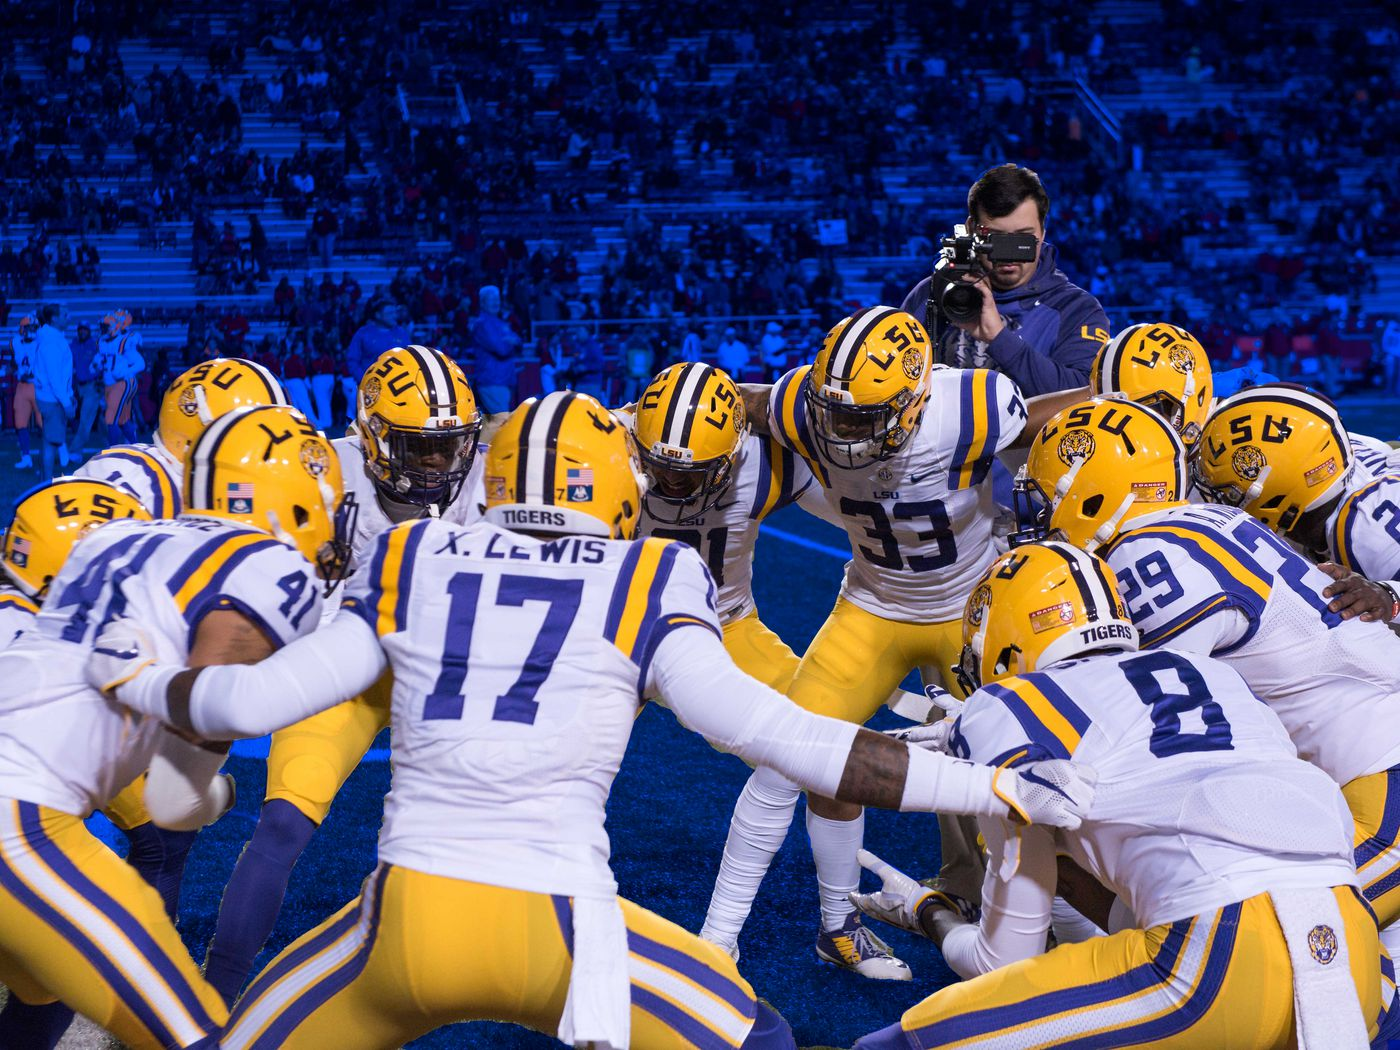 Lsu Football Hype Videos Are Amazing Here S How They Get Made Banner Society